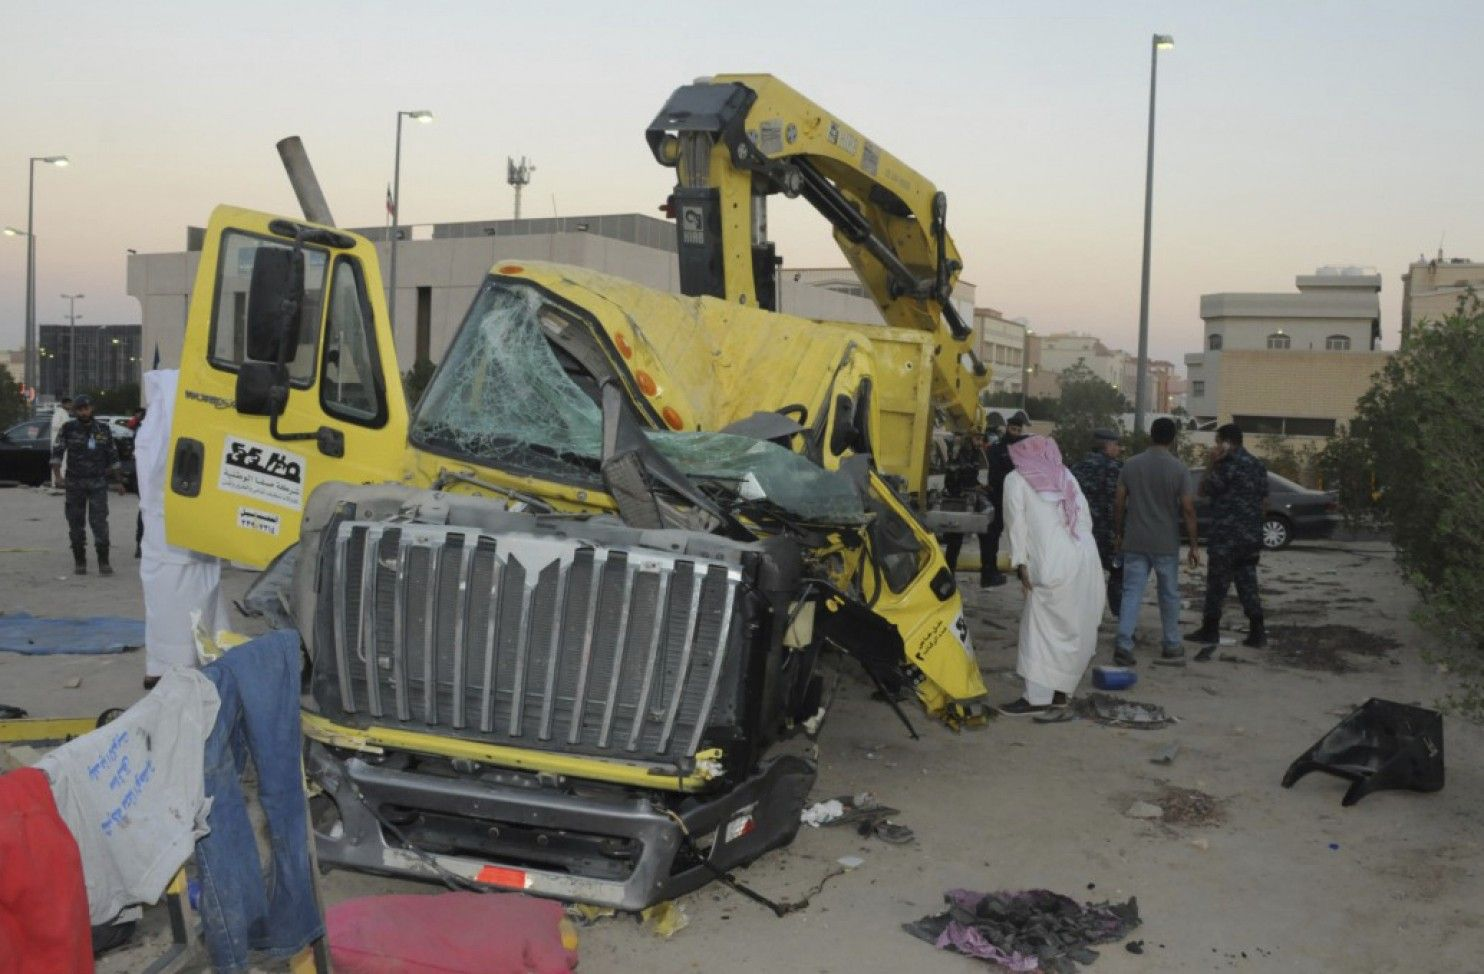 """KUWAIT CITY — American troops deployed in Kuwait who were intentionally rammed by an Egyptian man over the weekend pulled their attacker from his burning vehicle after it caught fire, the U.S. Embassy said Sunday. The embassy described the incident on a Kuwaiti highway Saturday that was initially thought to be a traffic accident as """"an attempted terrorist attack."""" All three uniformed U.S. military personnel in the truck that was struck escaped unharmed, the embassy said. The incapacitated…"""